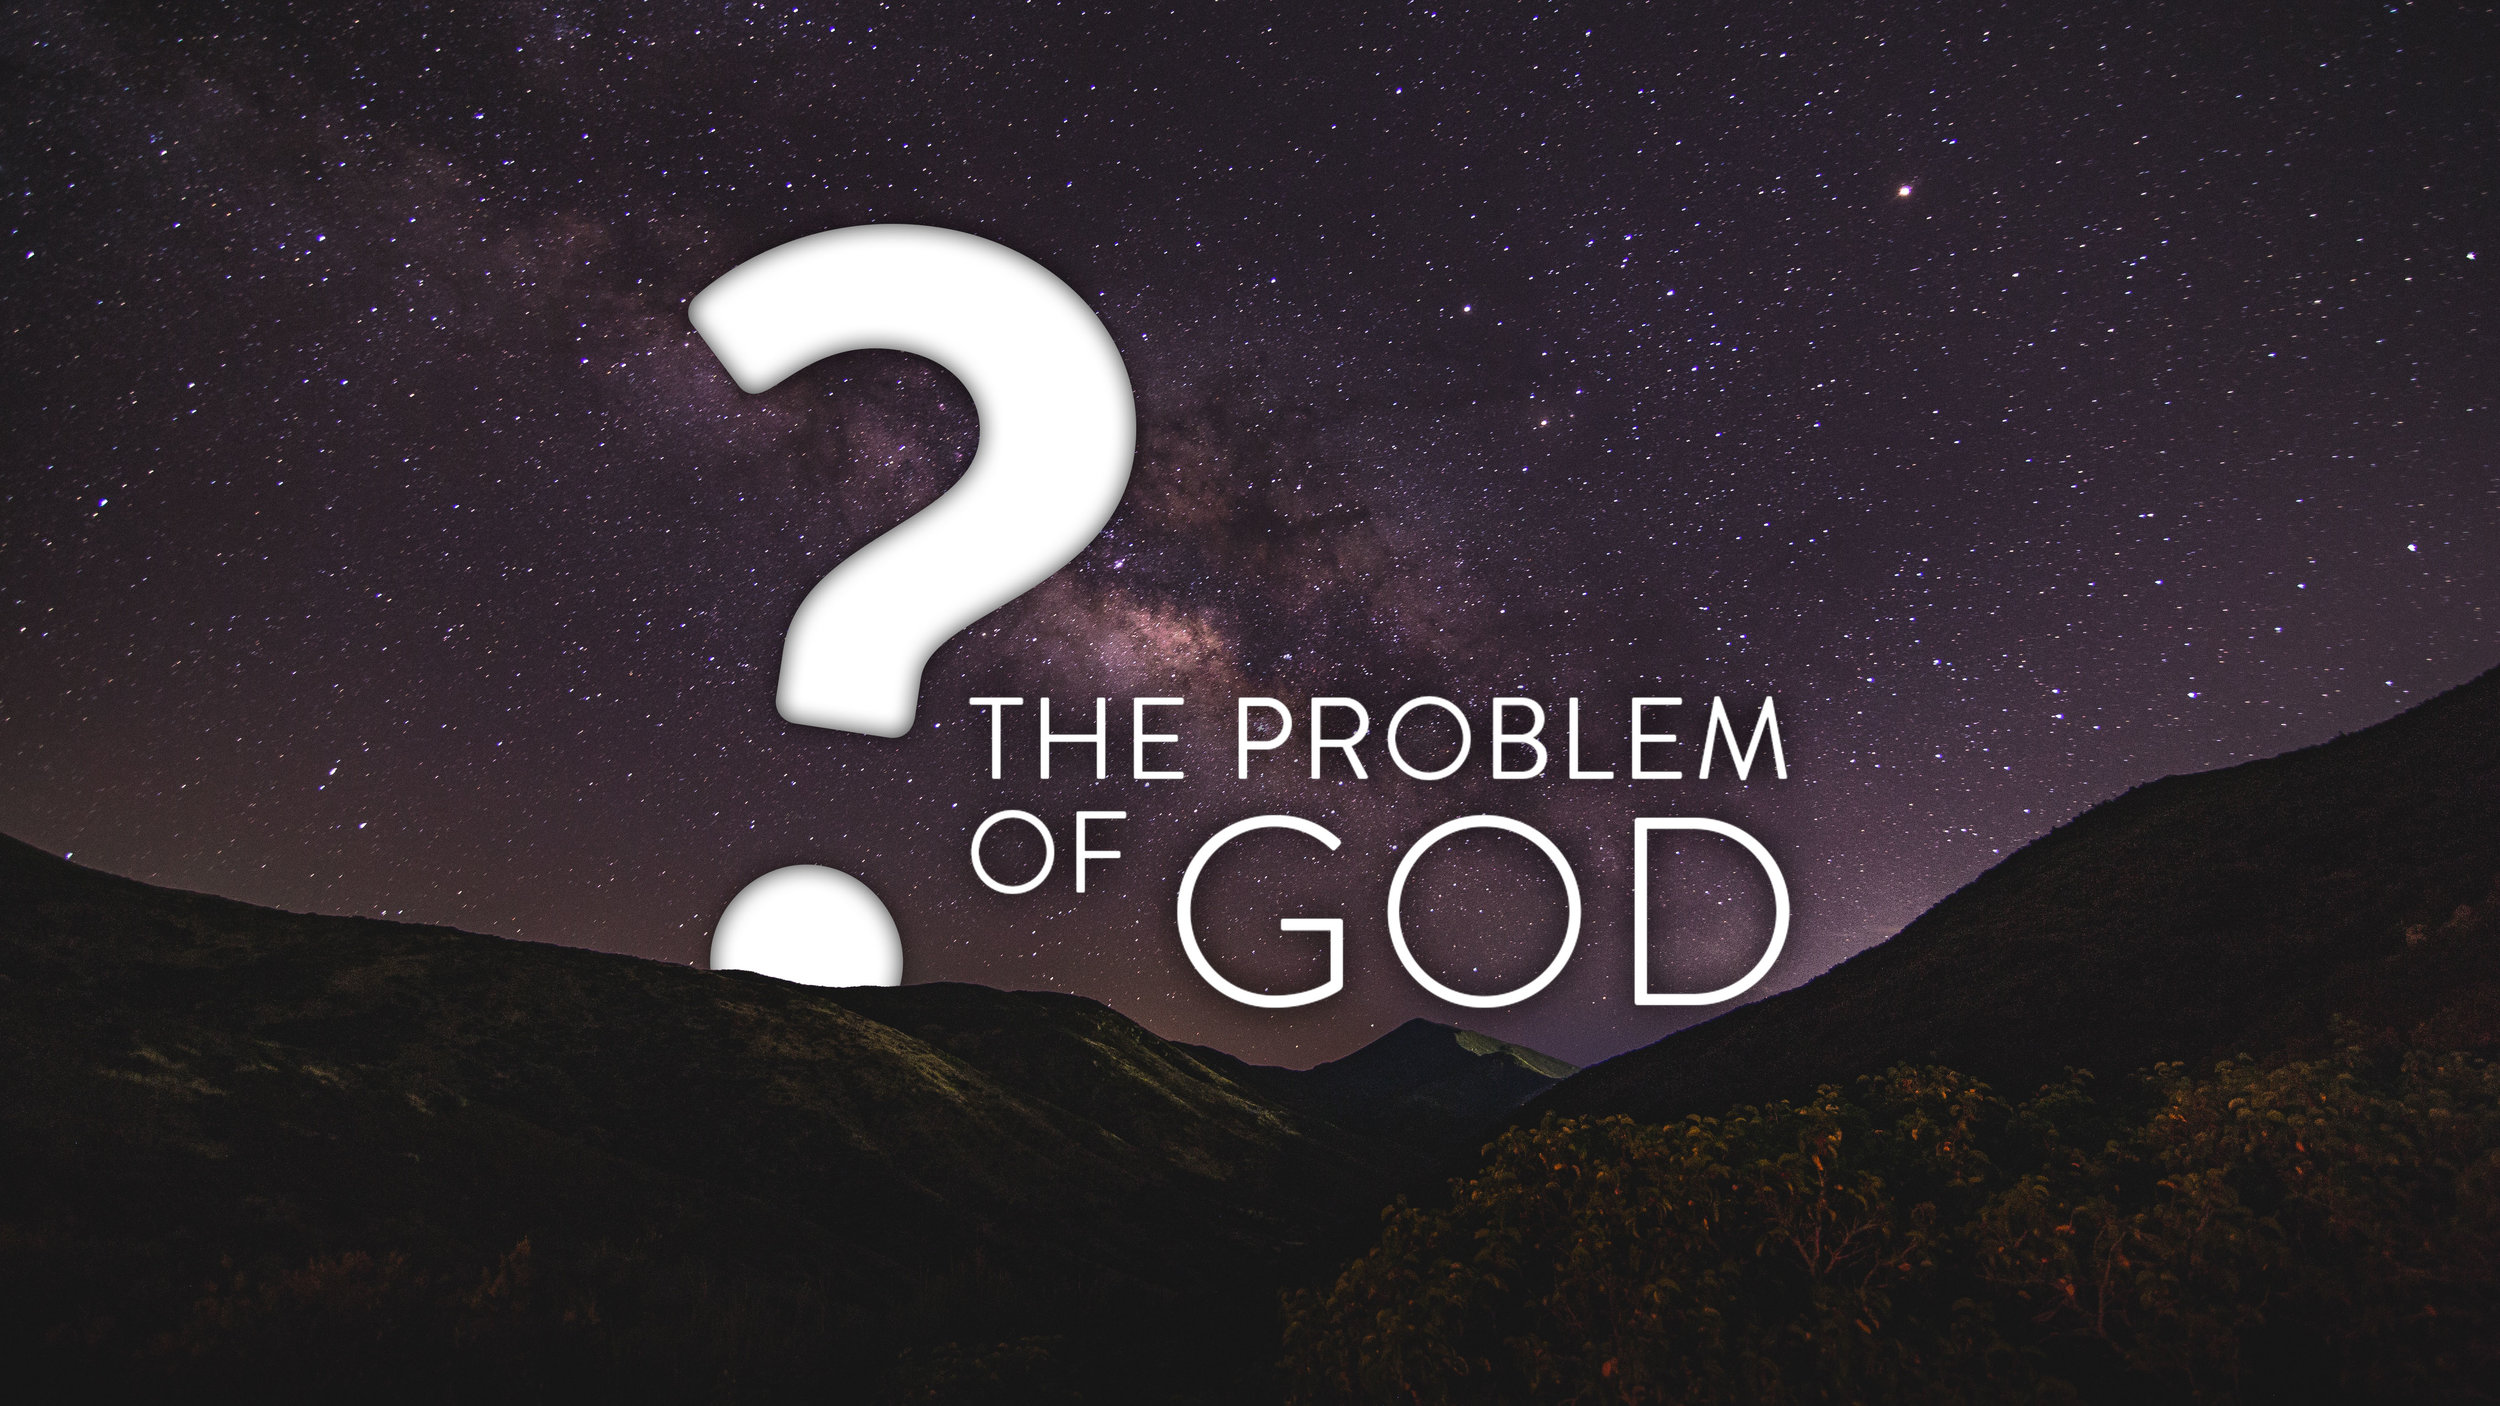 The Problem of God - 1. How do you know God exists?2. Are Science and Faith Compatible?3. Can the Bible be Trusted?4. Who is Jesus?5. Does God send people to hell?6. Is God Anti-Sex?7. Aren't Christians Hypocrites?8. How can Jesus be the only way to God?9. How Can God Allow Evil & Suffering?10. The Good Person Myth